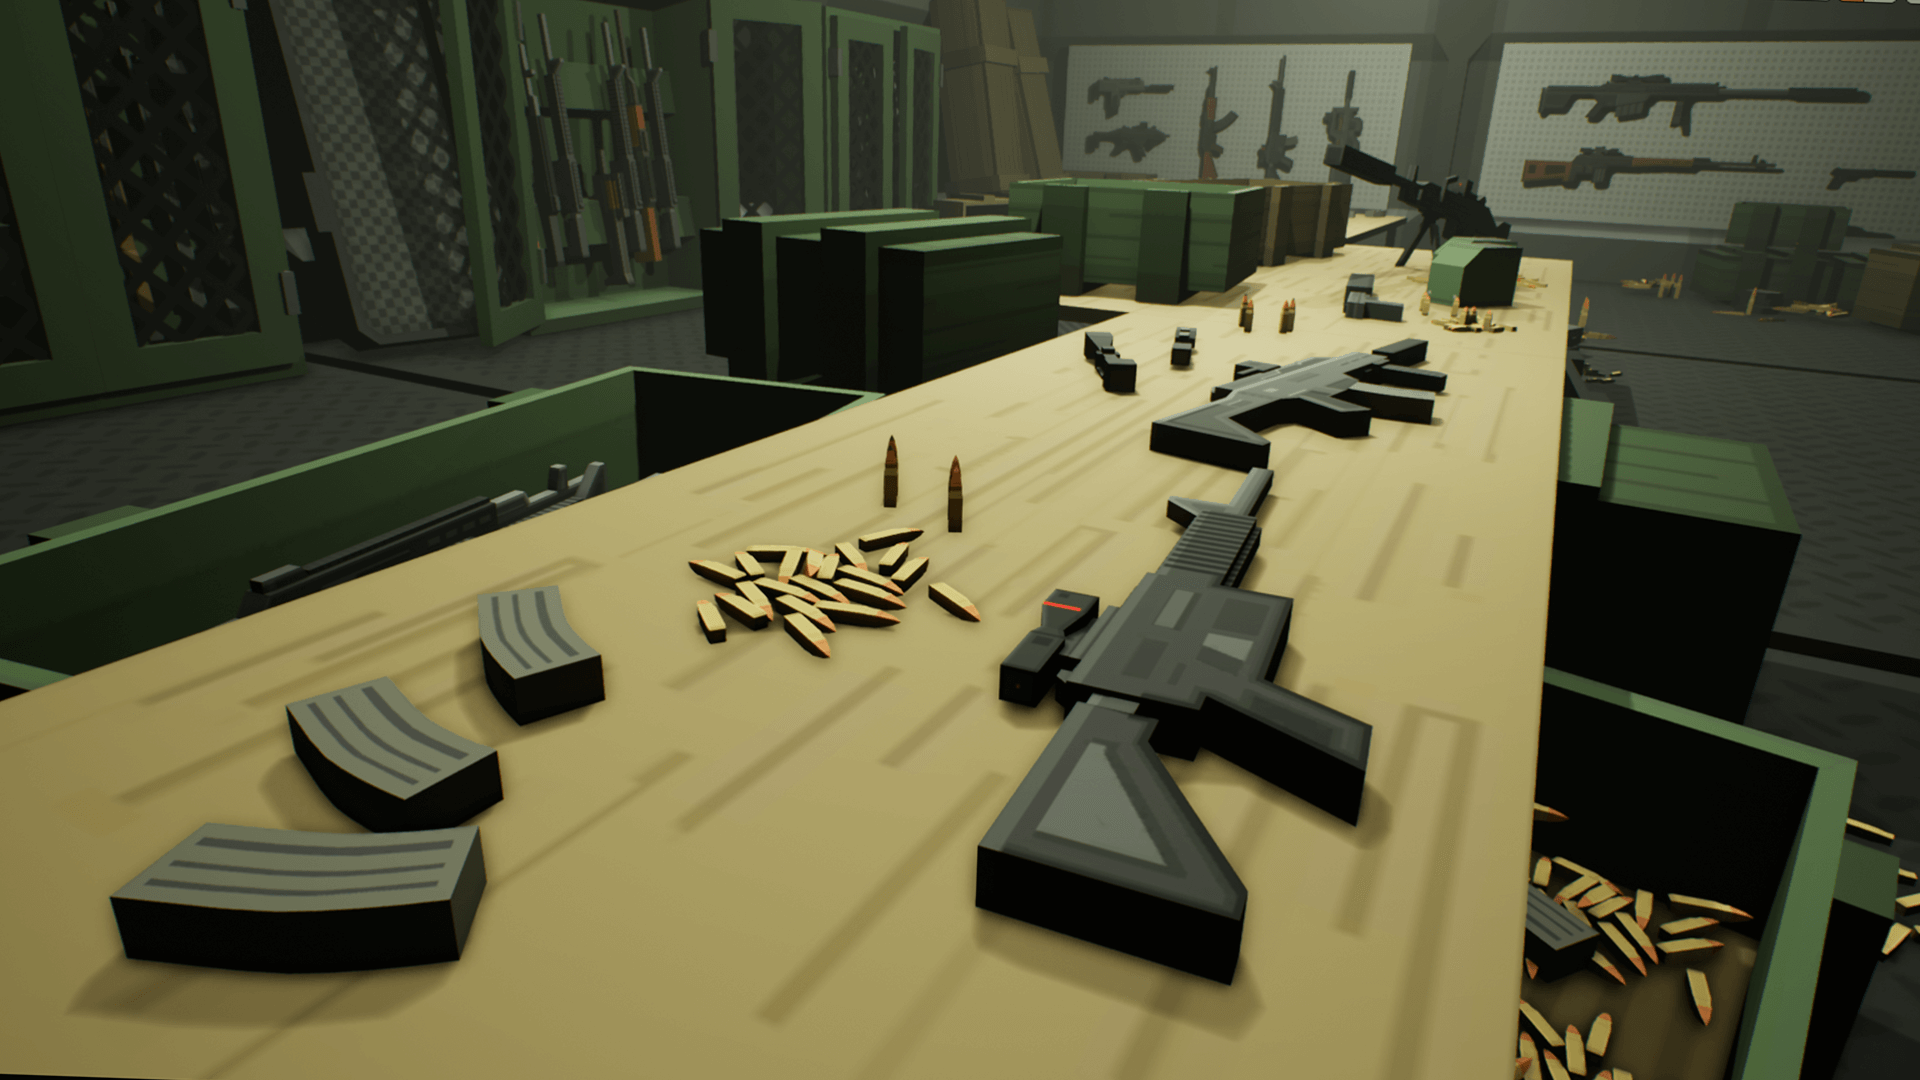 Third Low Poly Art Pubg: Low Poly Weapons Armory By Nocturnal Arts In Environments